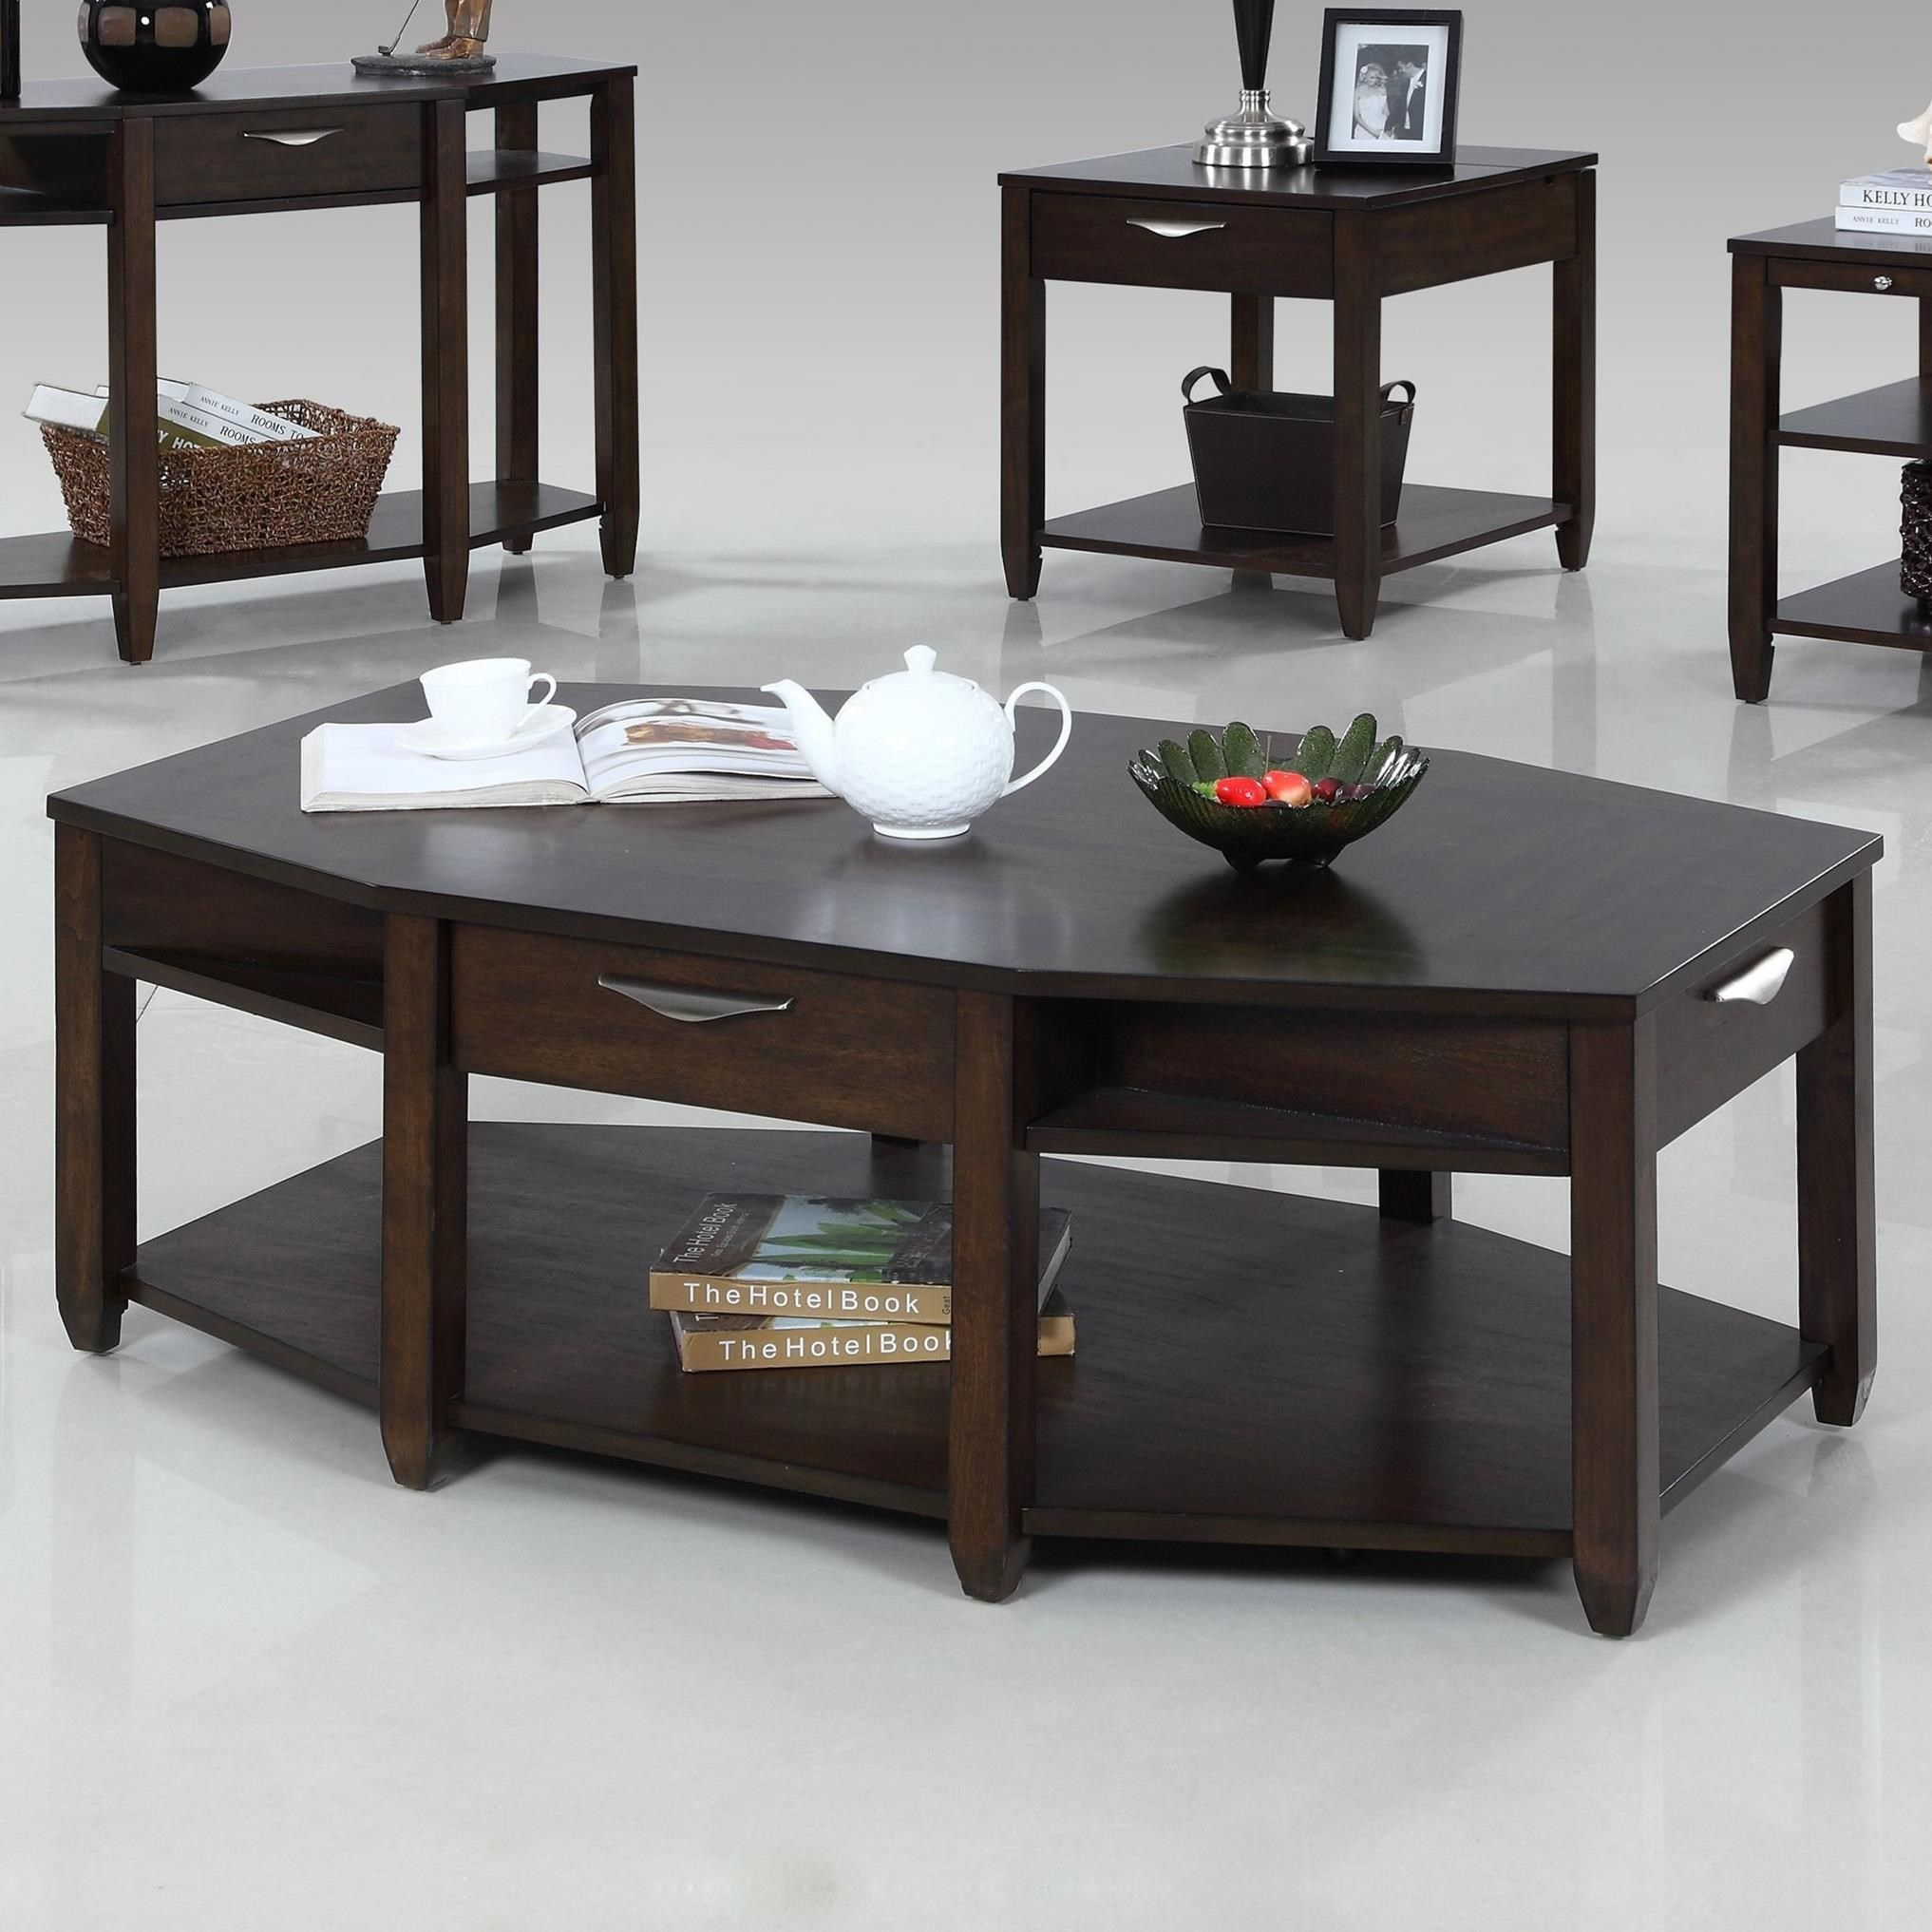 Progressive Furniture Paladium Eight Sided Castered Cocktail Table - Item Number: T418-01